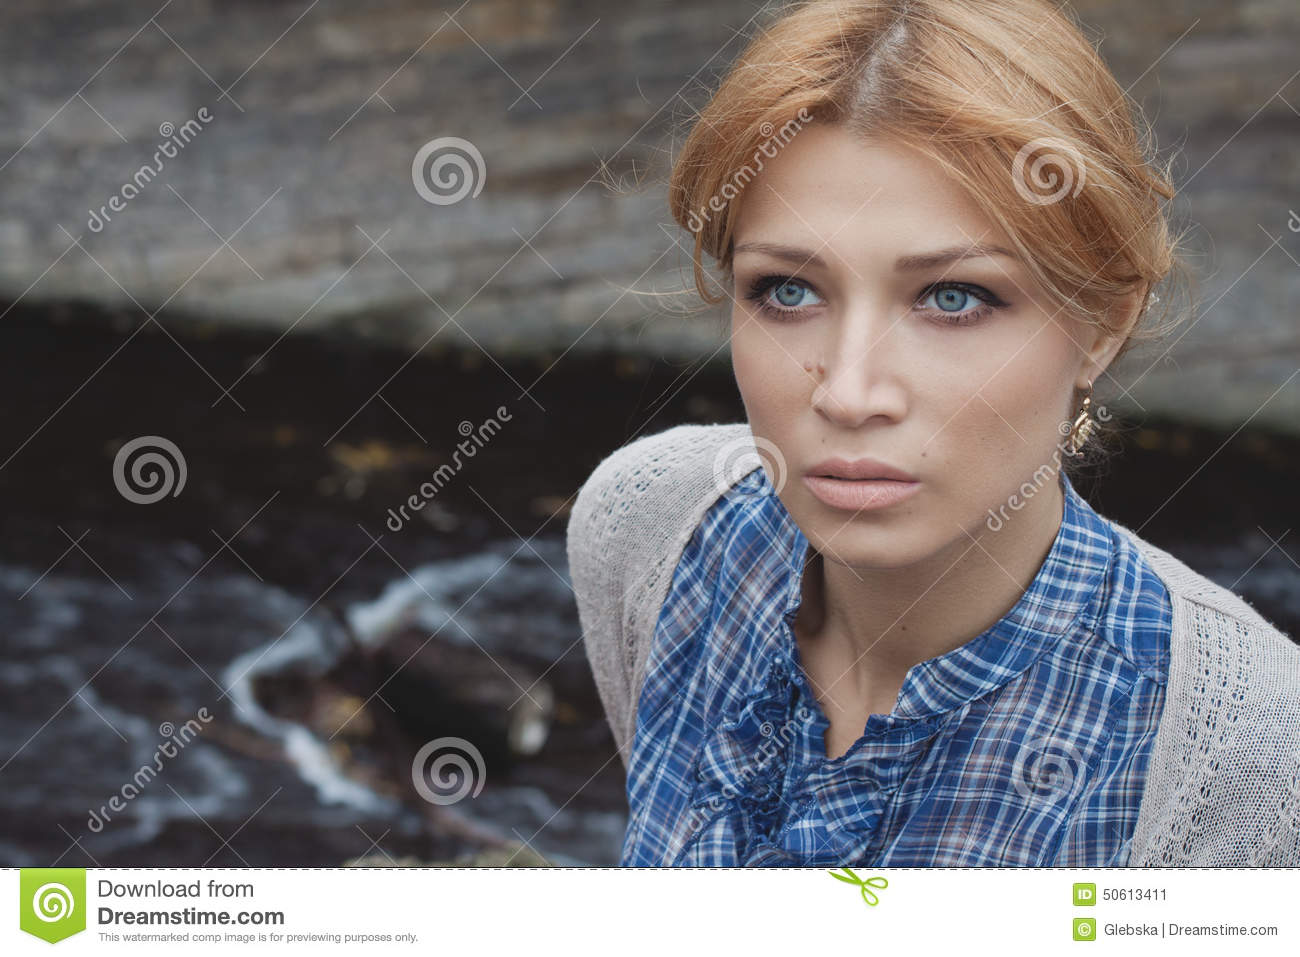 Close-up portrait of woman in retro style outdoor